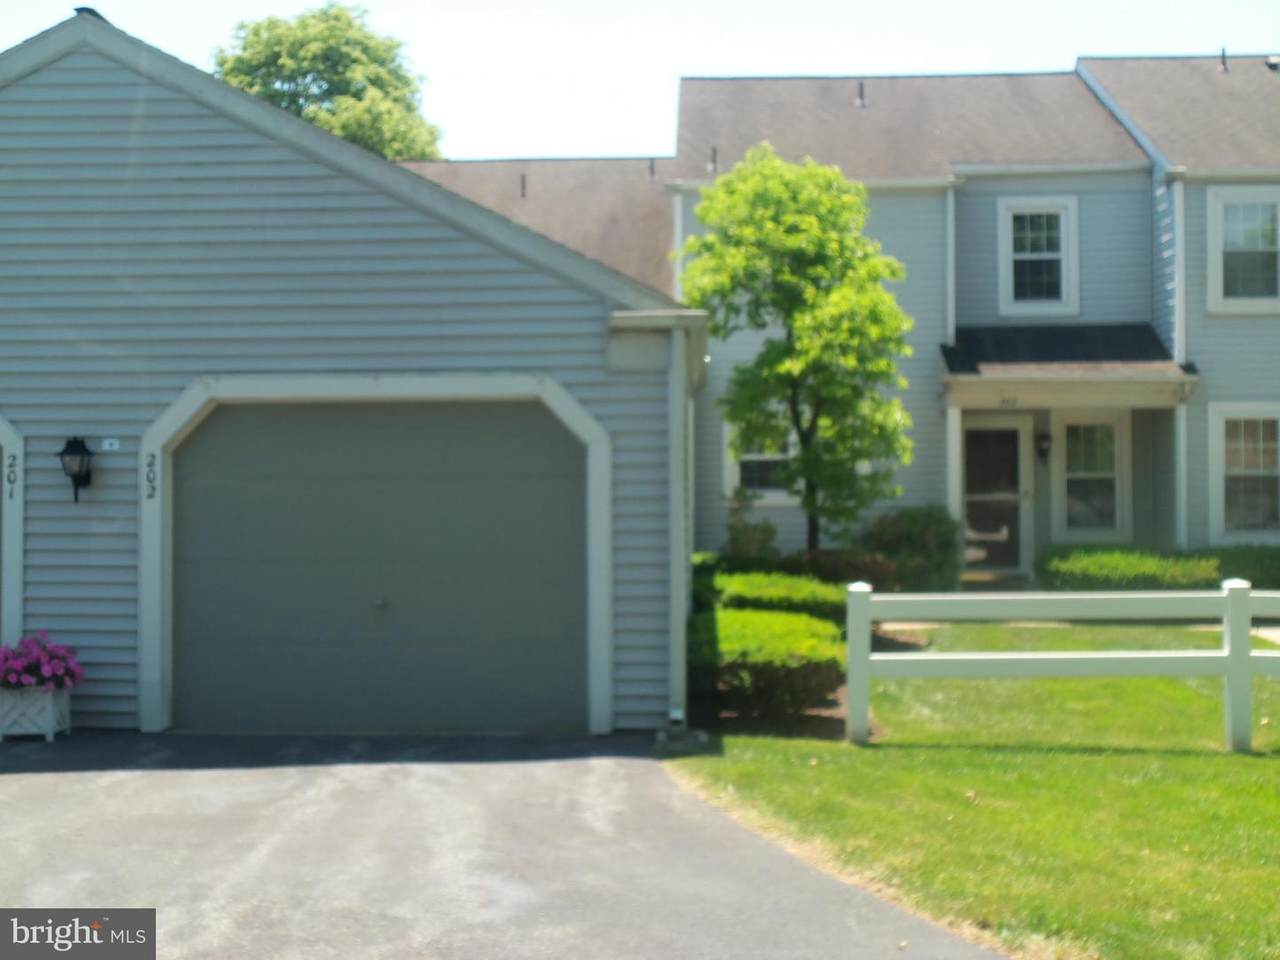 202 Coventry Ct. - Photo 1